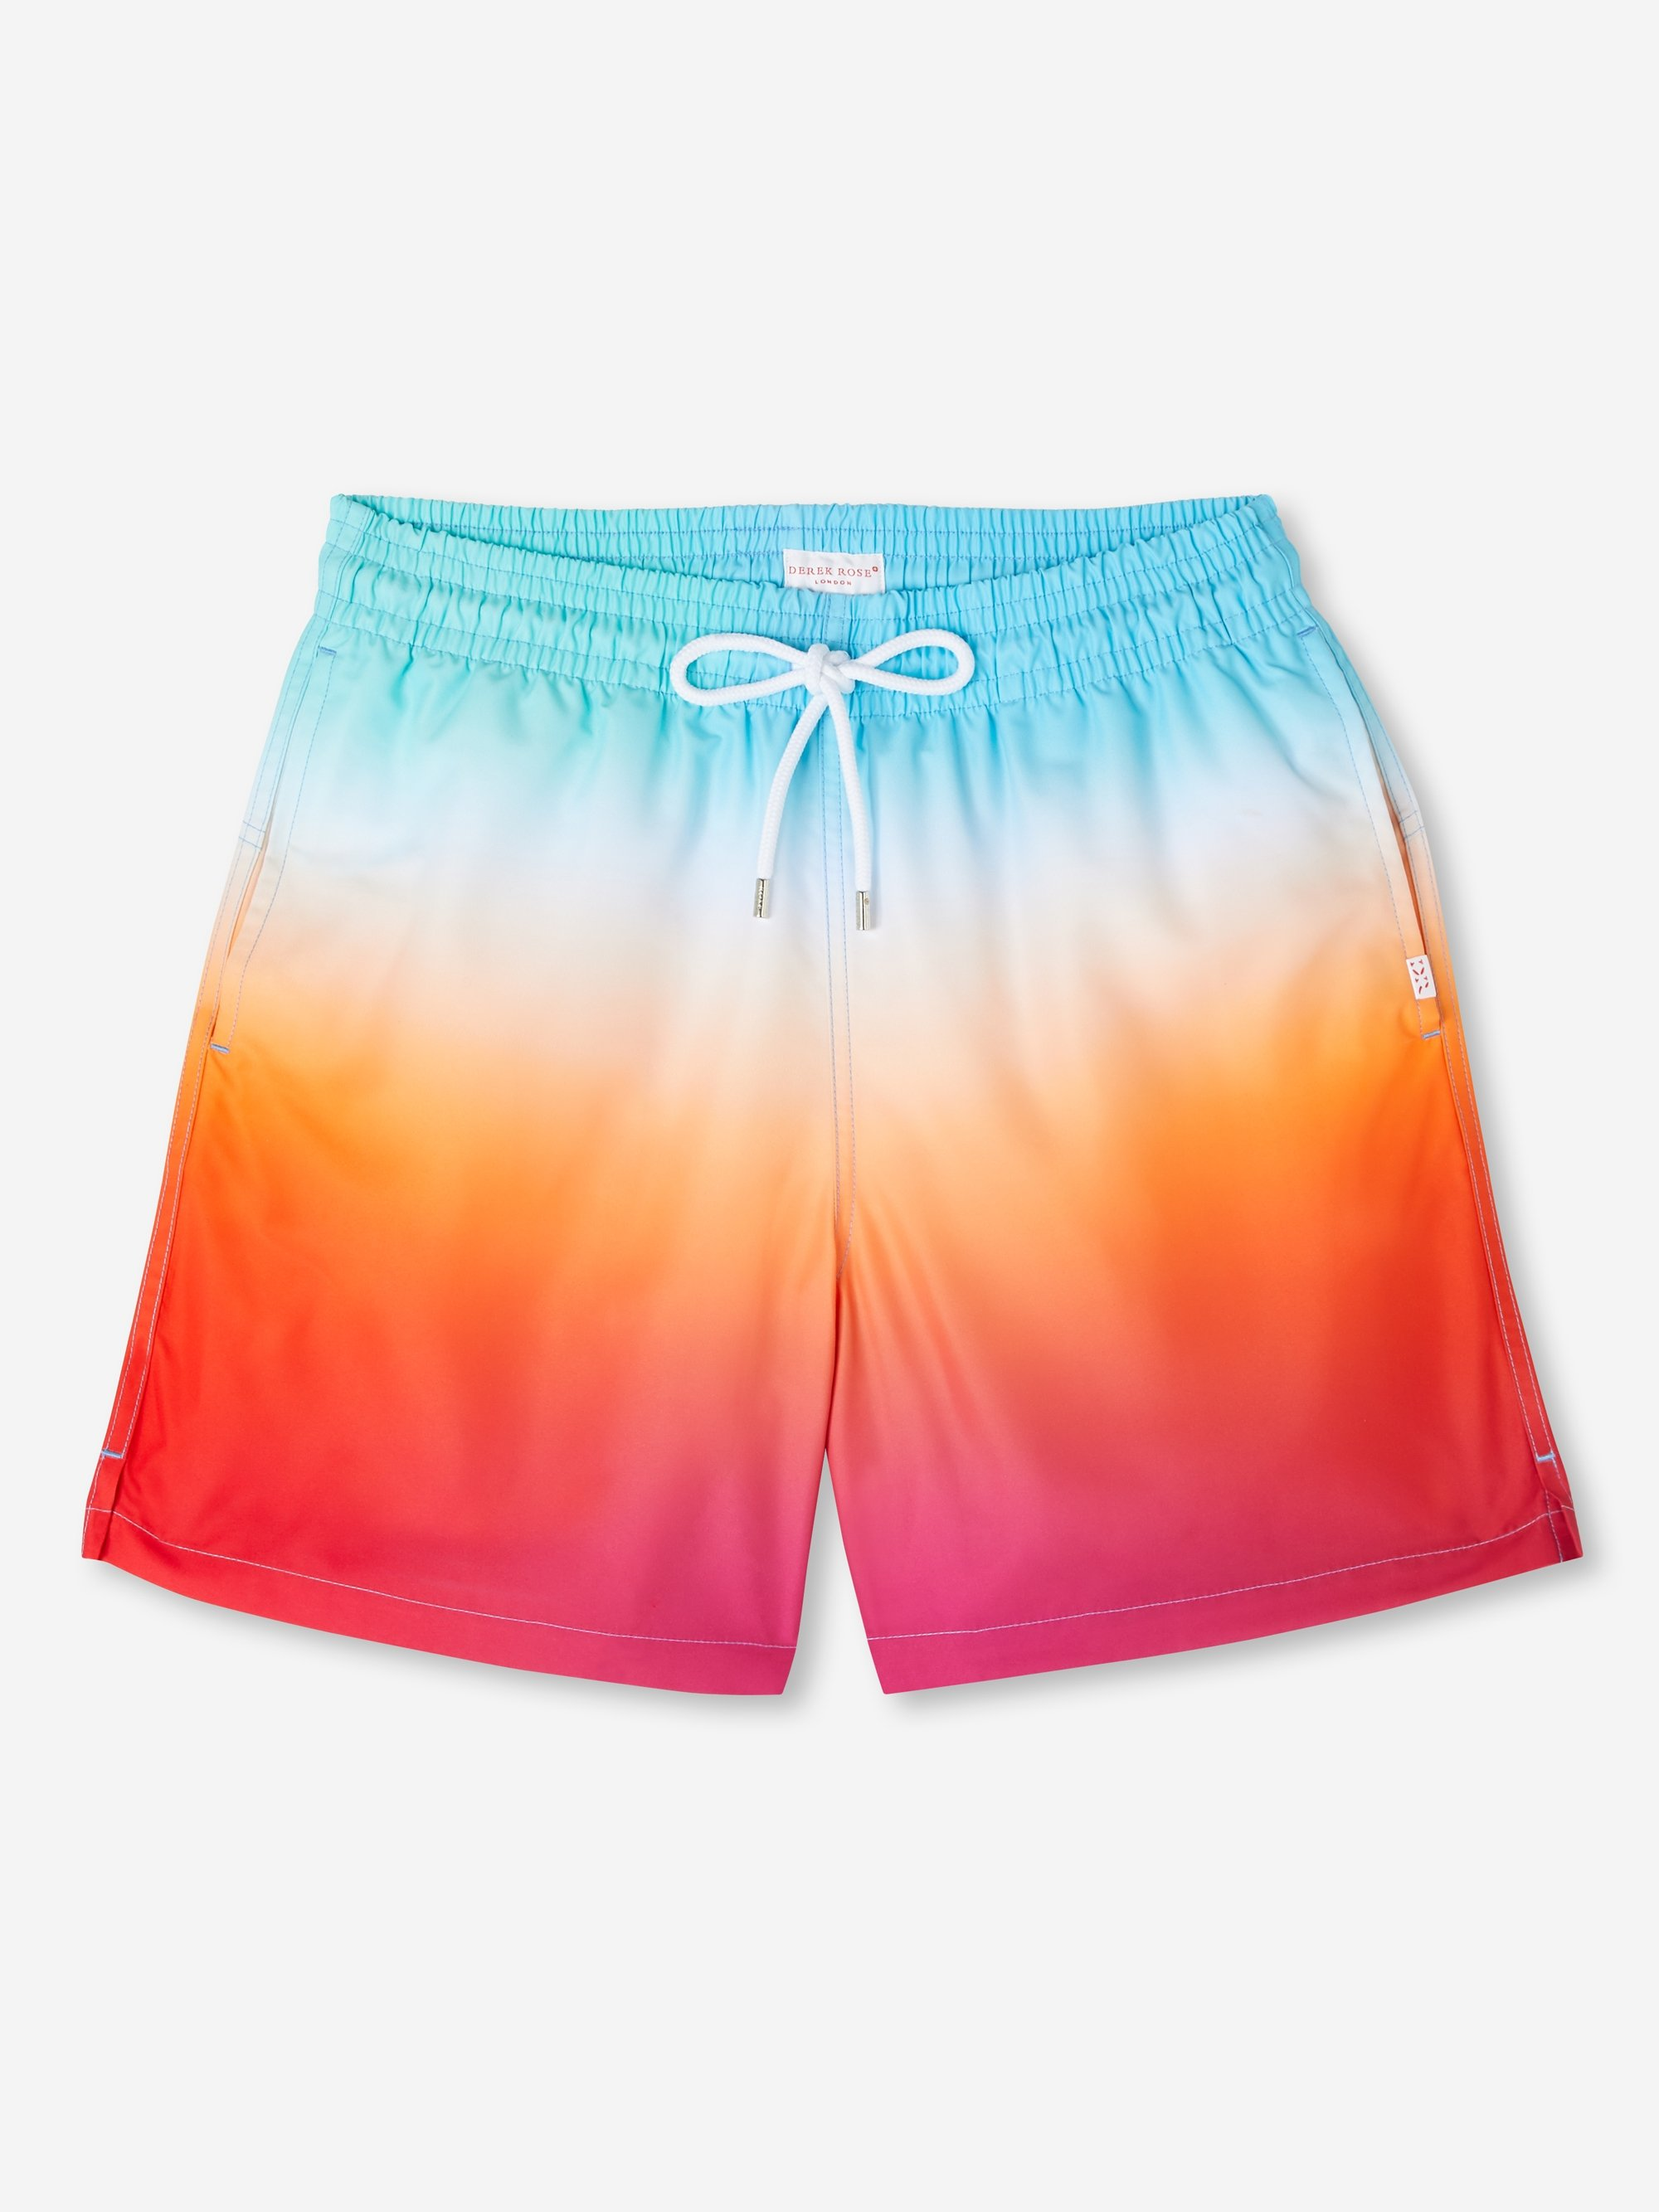 Men's Classic Fit Swim Shorts Oahu 3 Multi